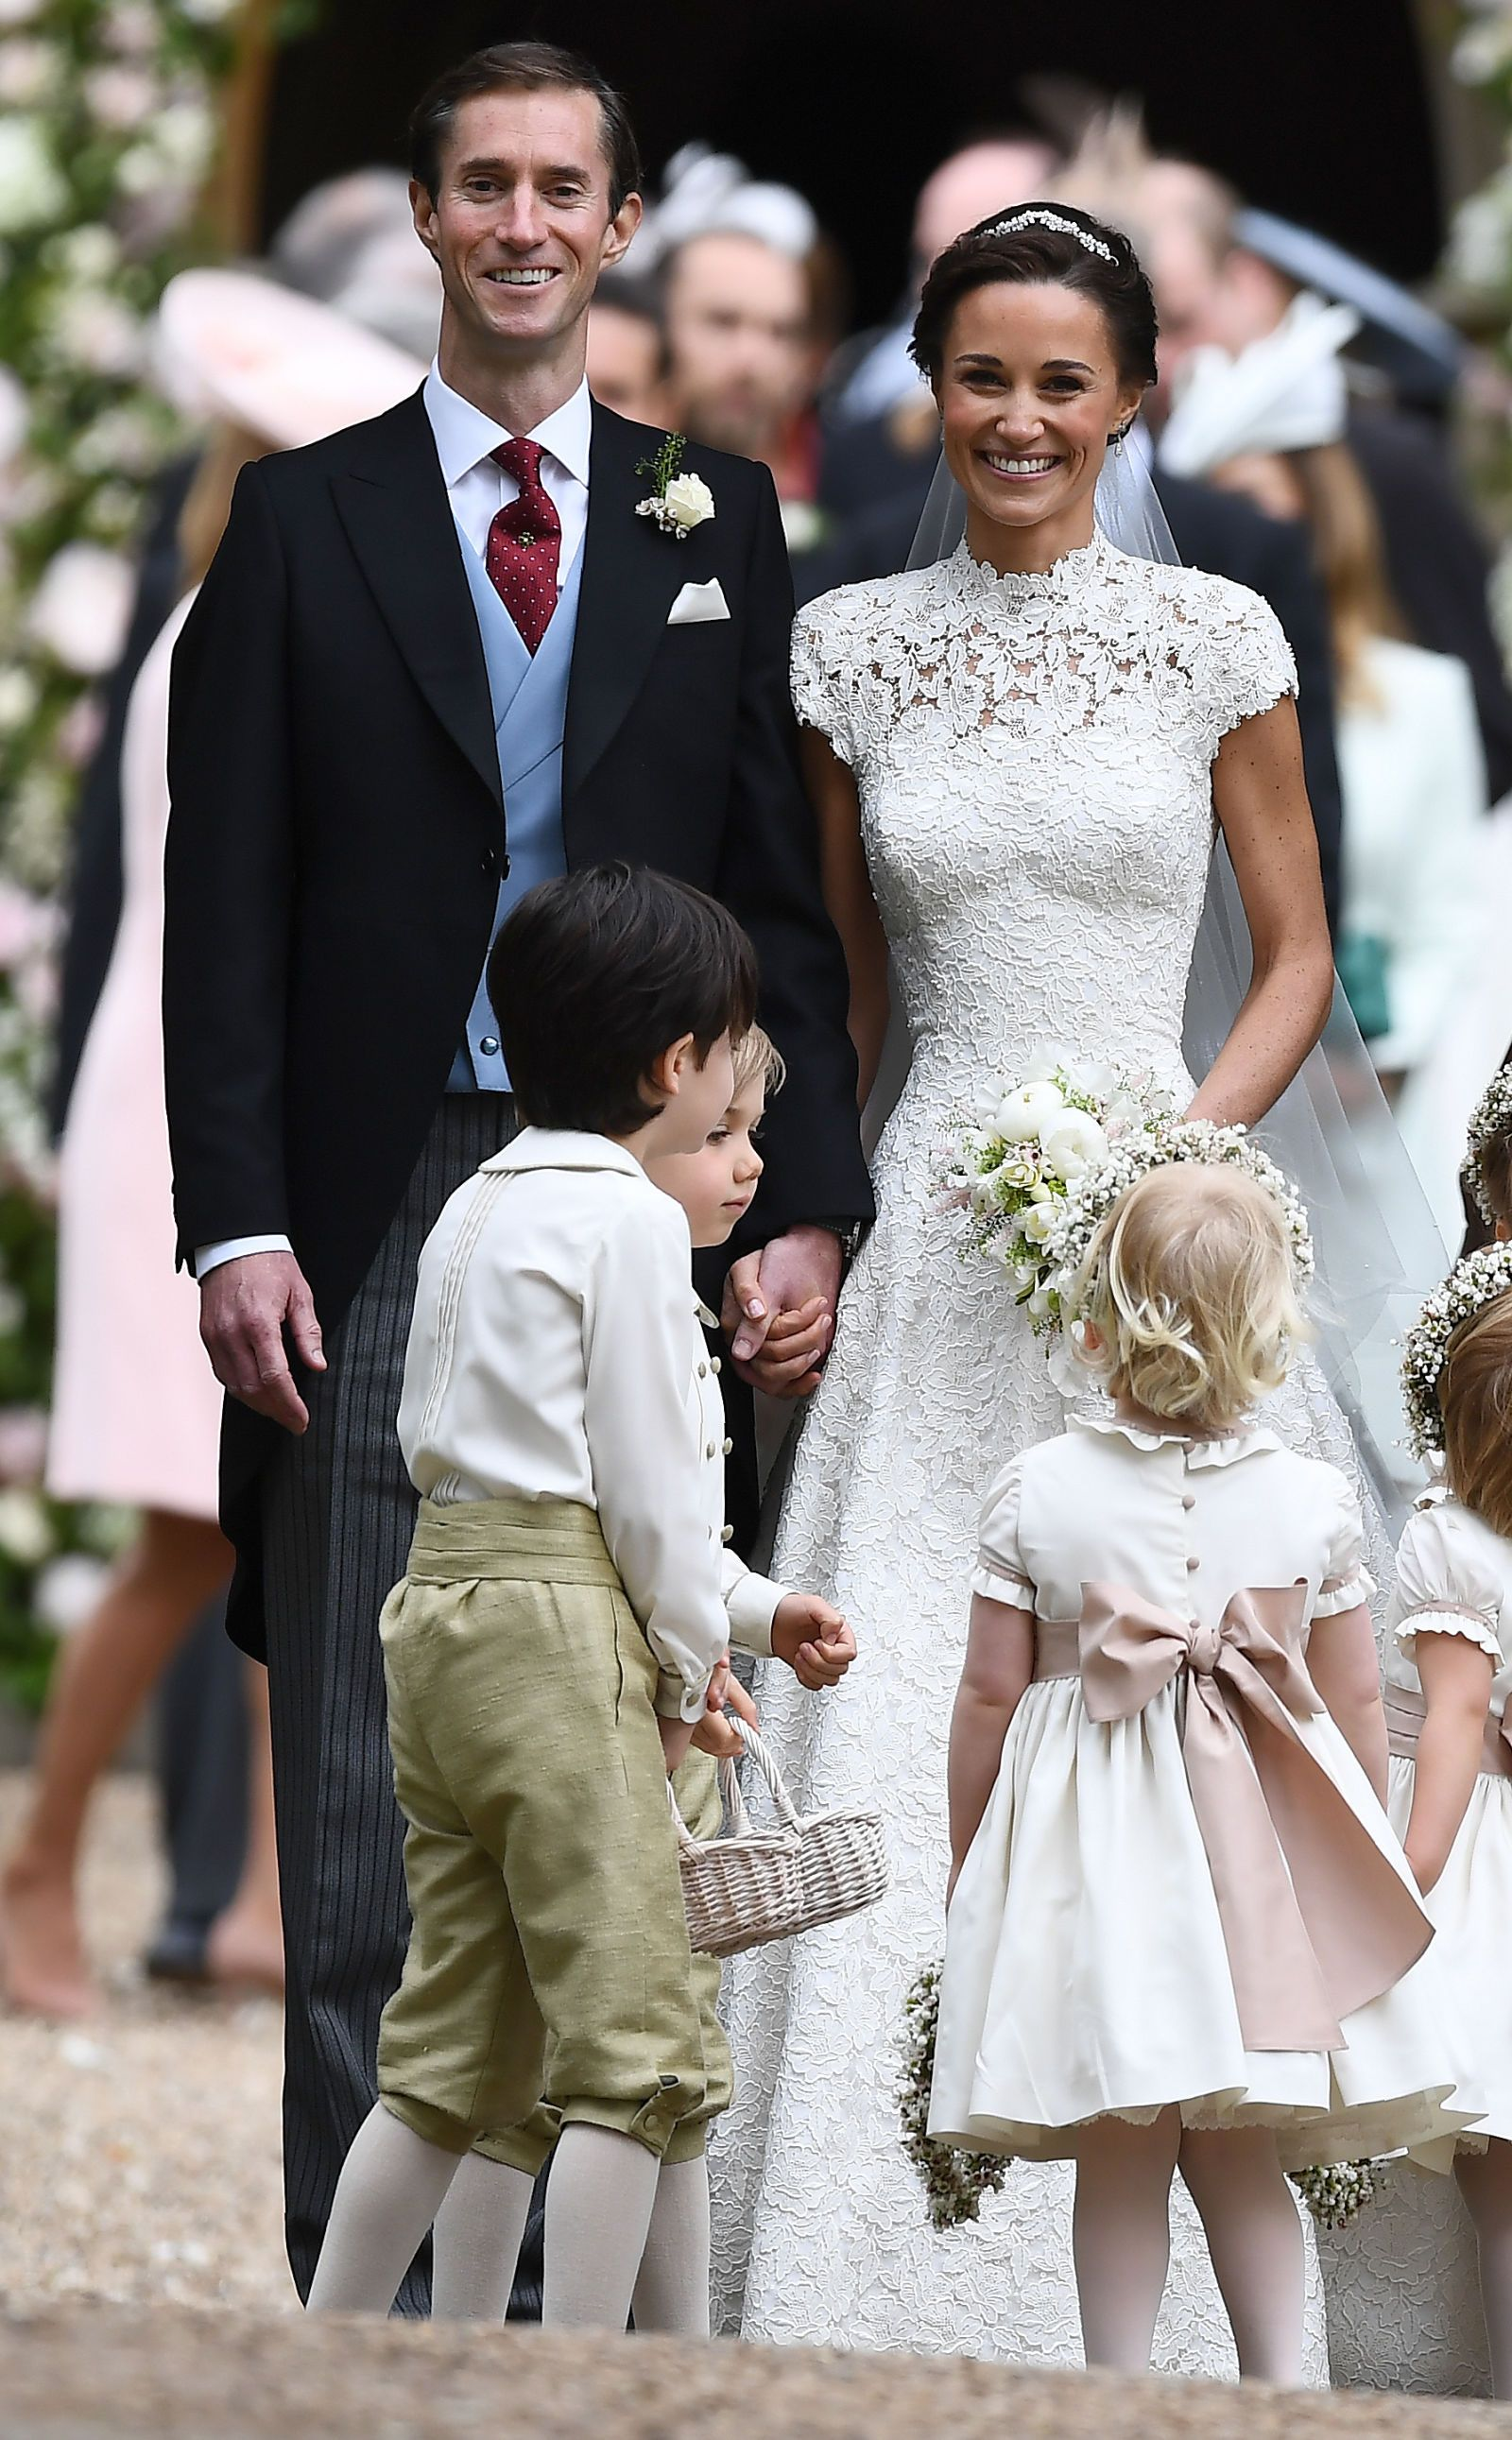 Pippa S Wedding.Here S The First Look At Pippa Middleton S Wedding Ring Pretty